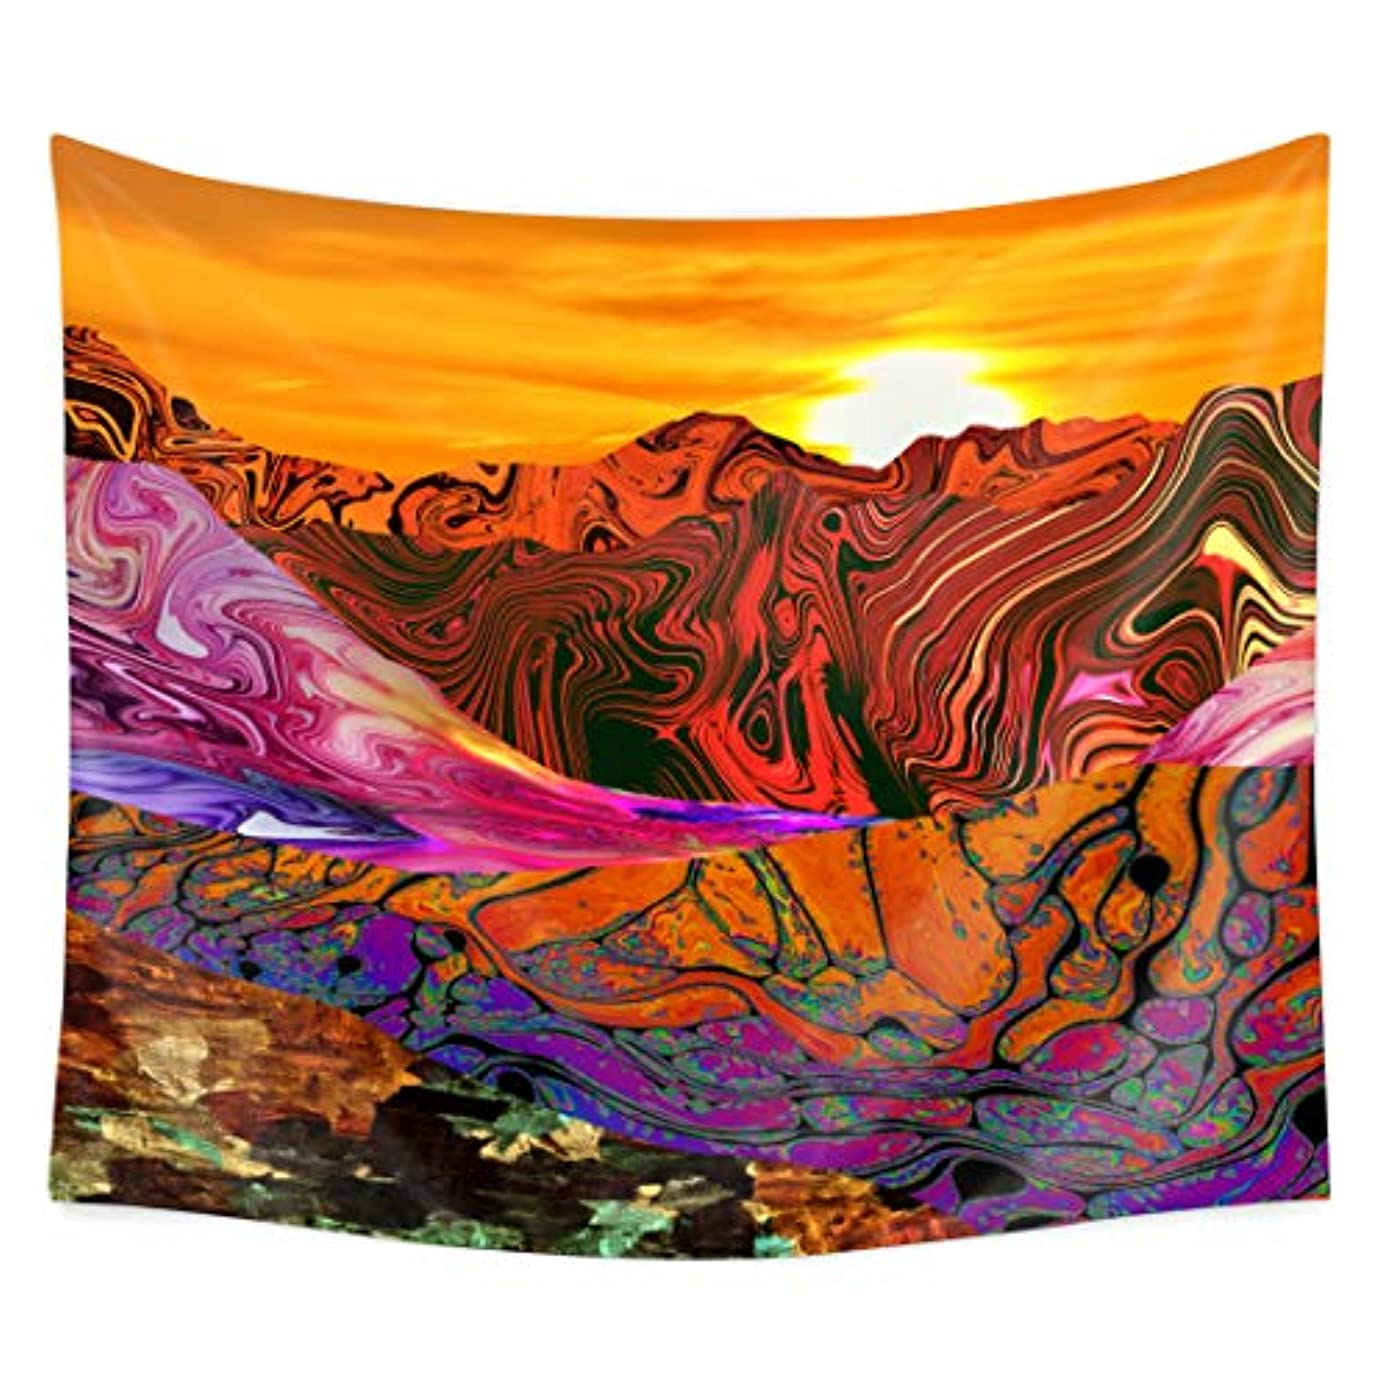 chengsan Trippy Trek Tapestry Colorful Landscape Wall Tapestry- Sunrise Wall Art Psychedelic Trail Wall Hanging- Rainbow Wall Decor (78x59Inches, 7)